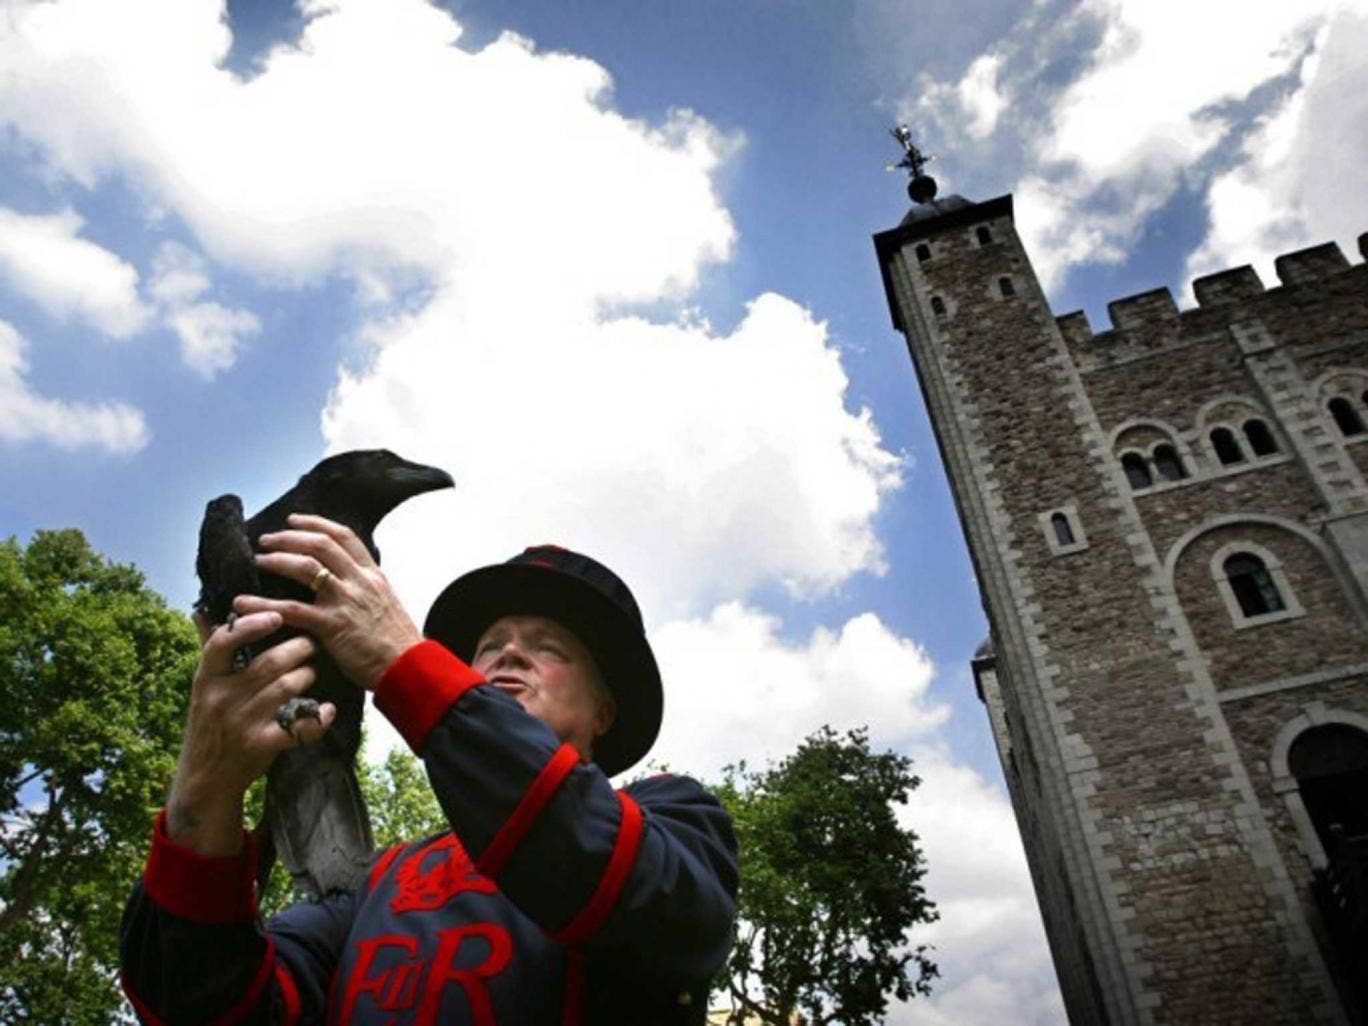 Watch the birdie: Ravens have been kept at the Tower for centuries